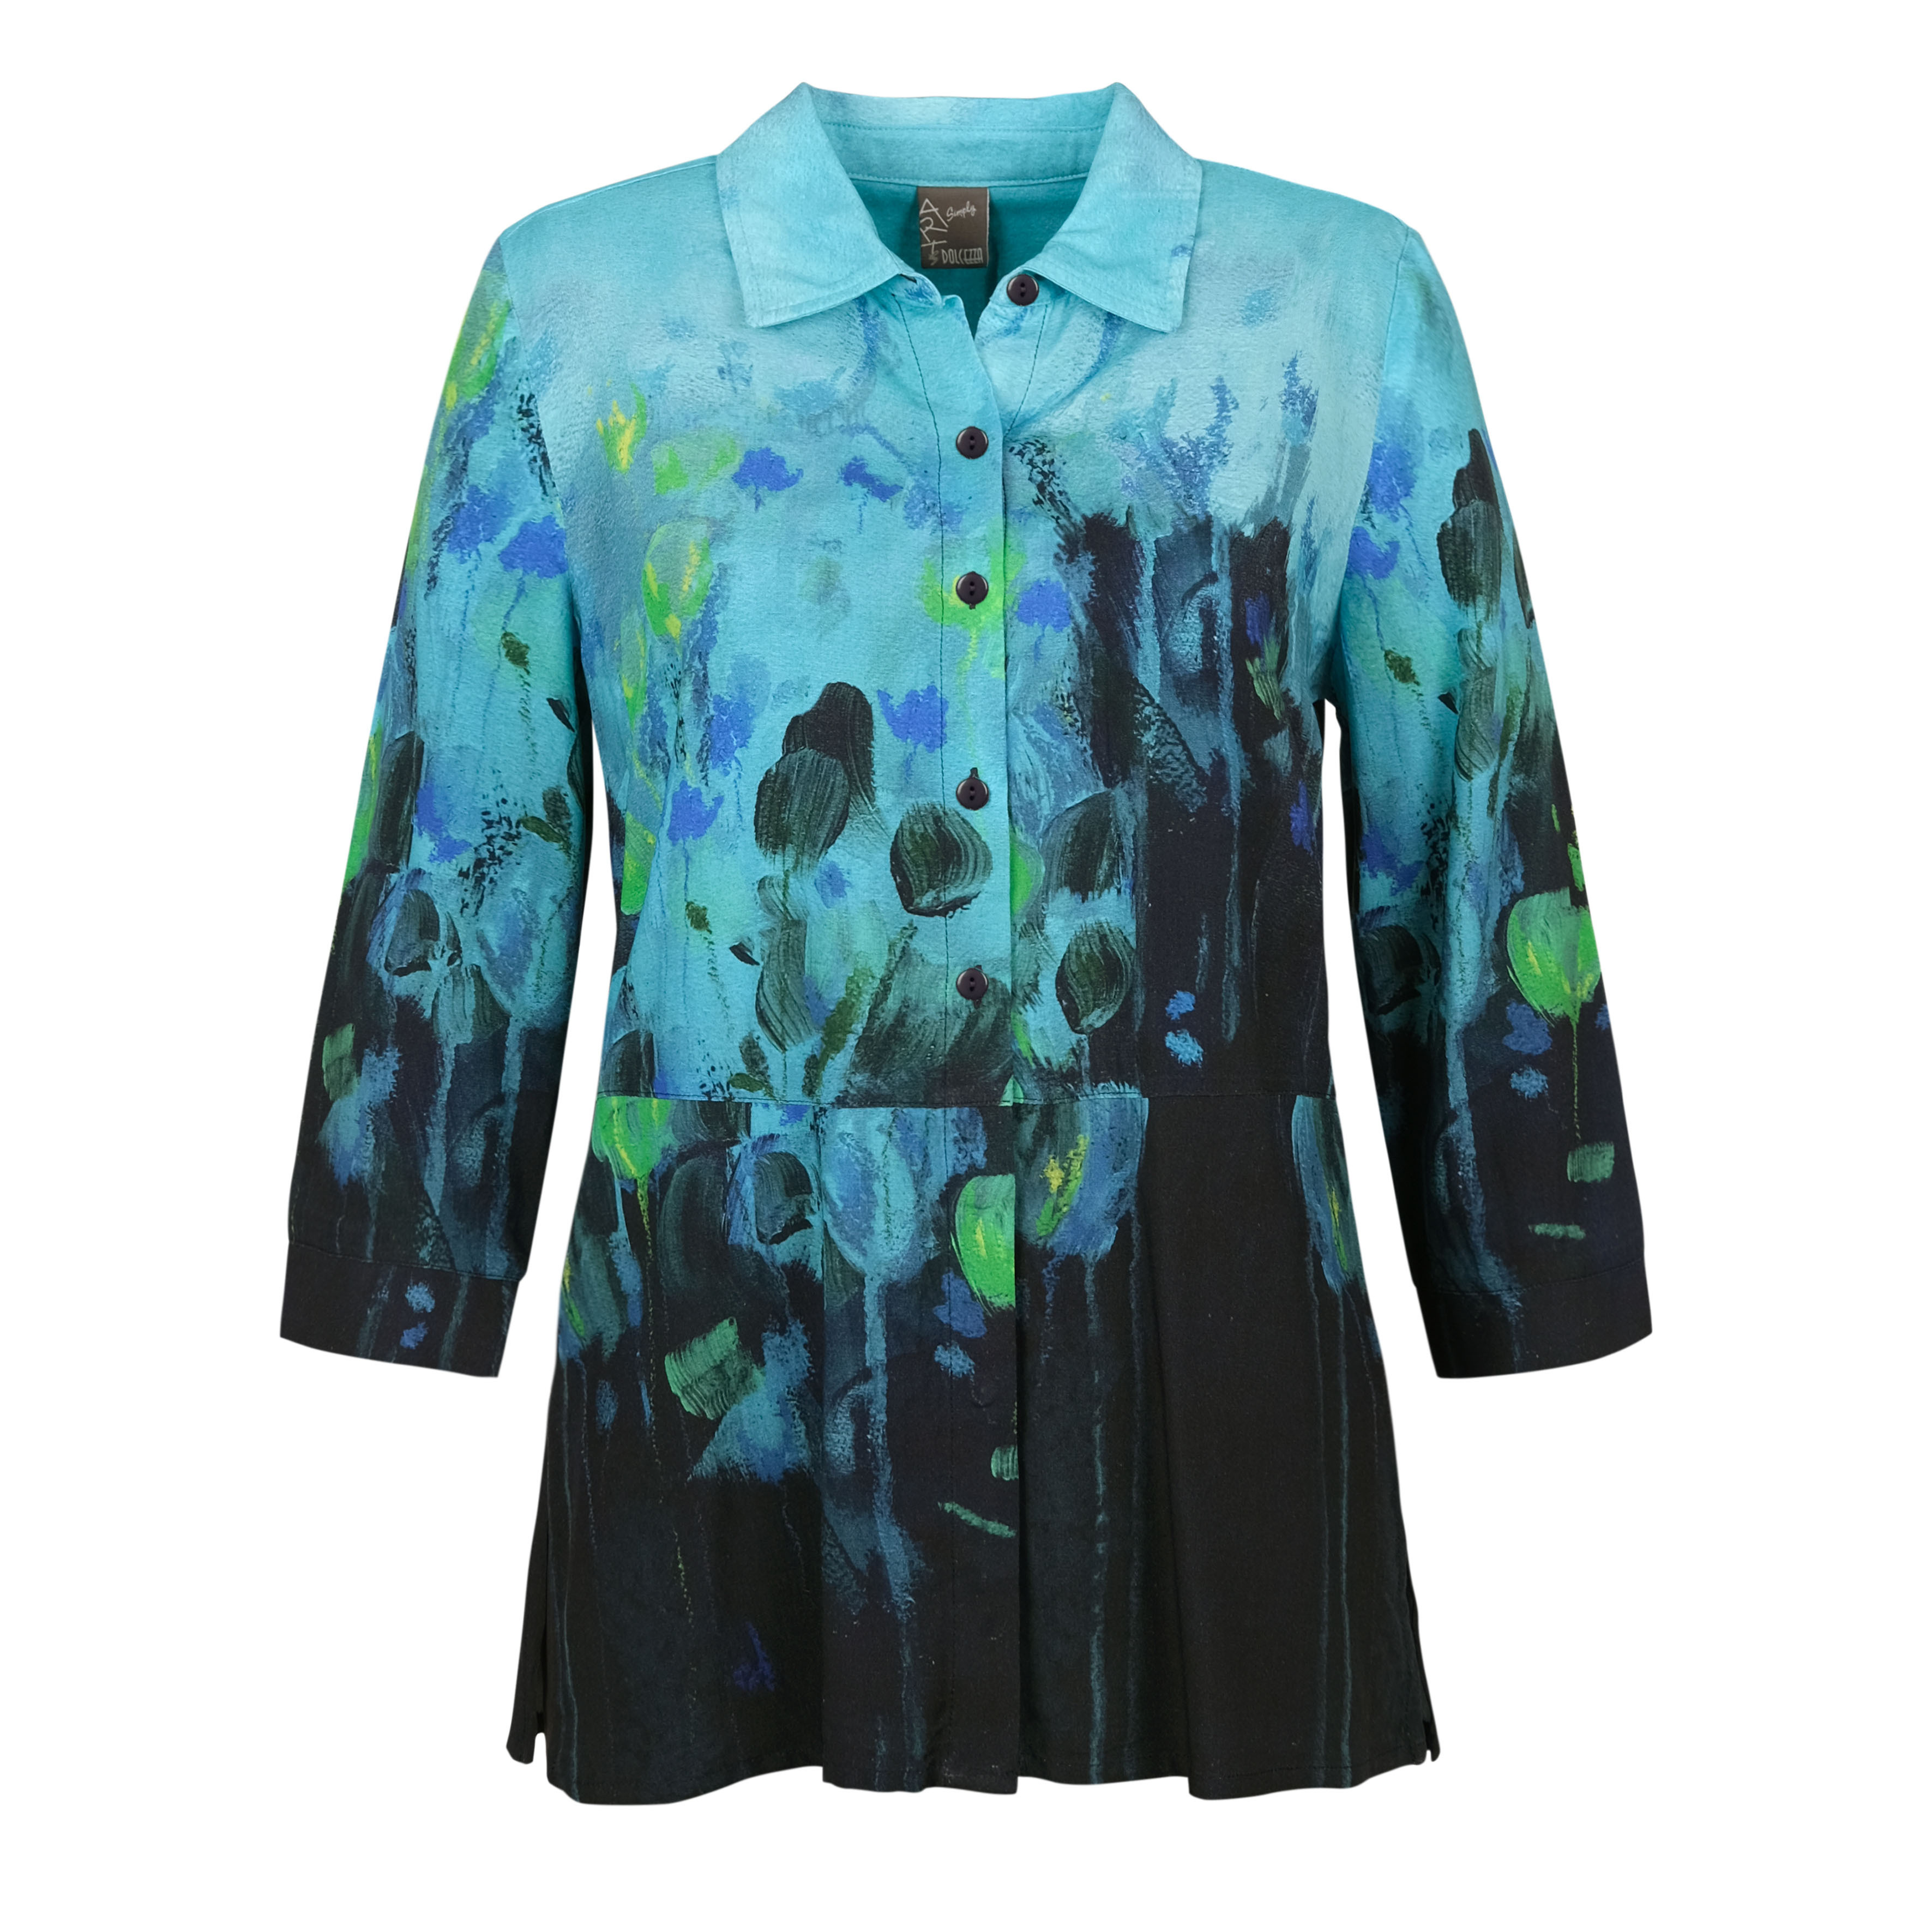 Simply Art Dolcezza: Fantaisie Floralge Abstract Art Buttoned Down Top (1 Available at Special Price!) Dolcezza_SimplyArt_70634